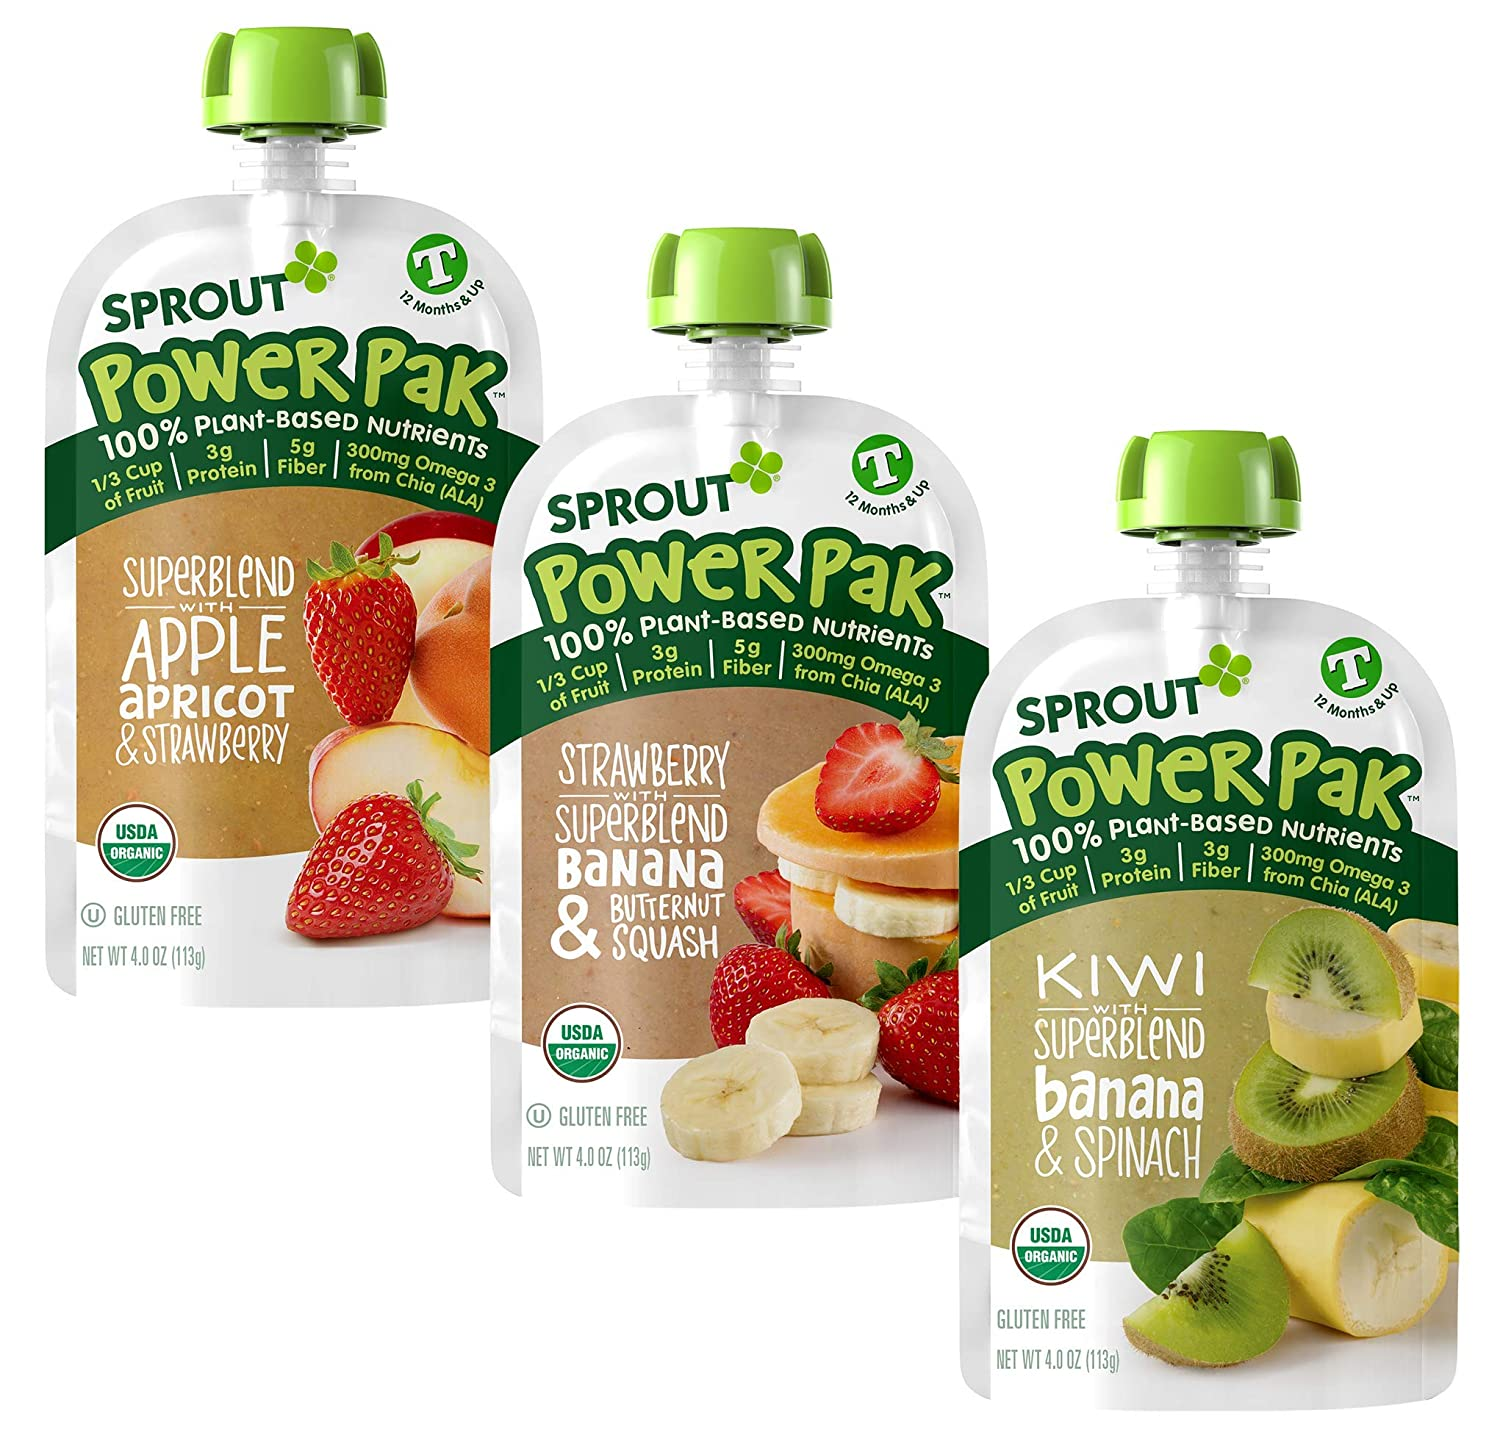 Sprout Organic Baby Food Toddler Power Pak Pouches Stage 4, Superblend Strawberry Banana Butternut, 4 Ounce Pouches (6 Each)